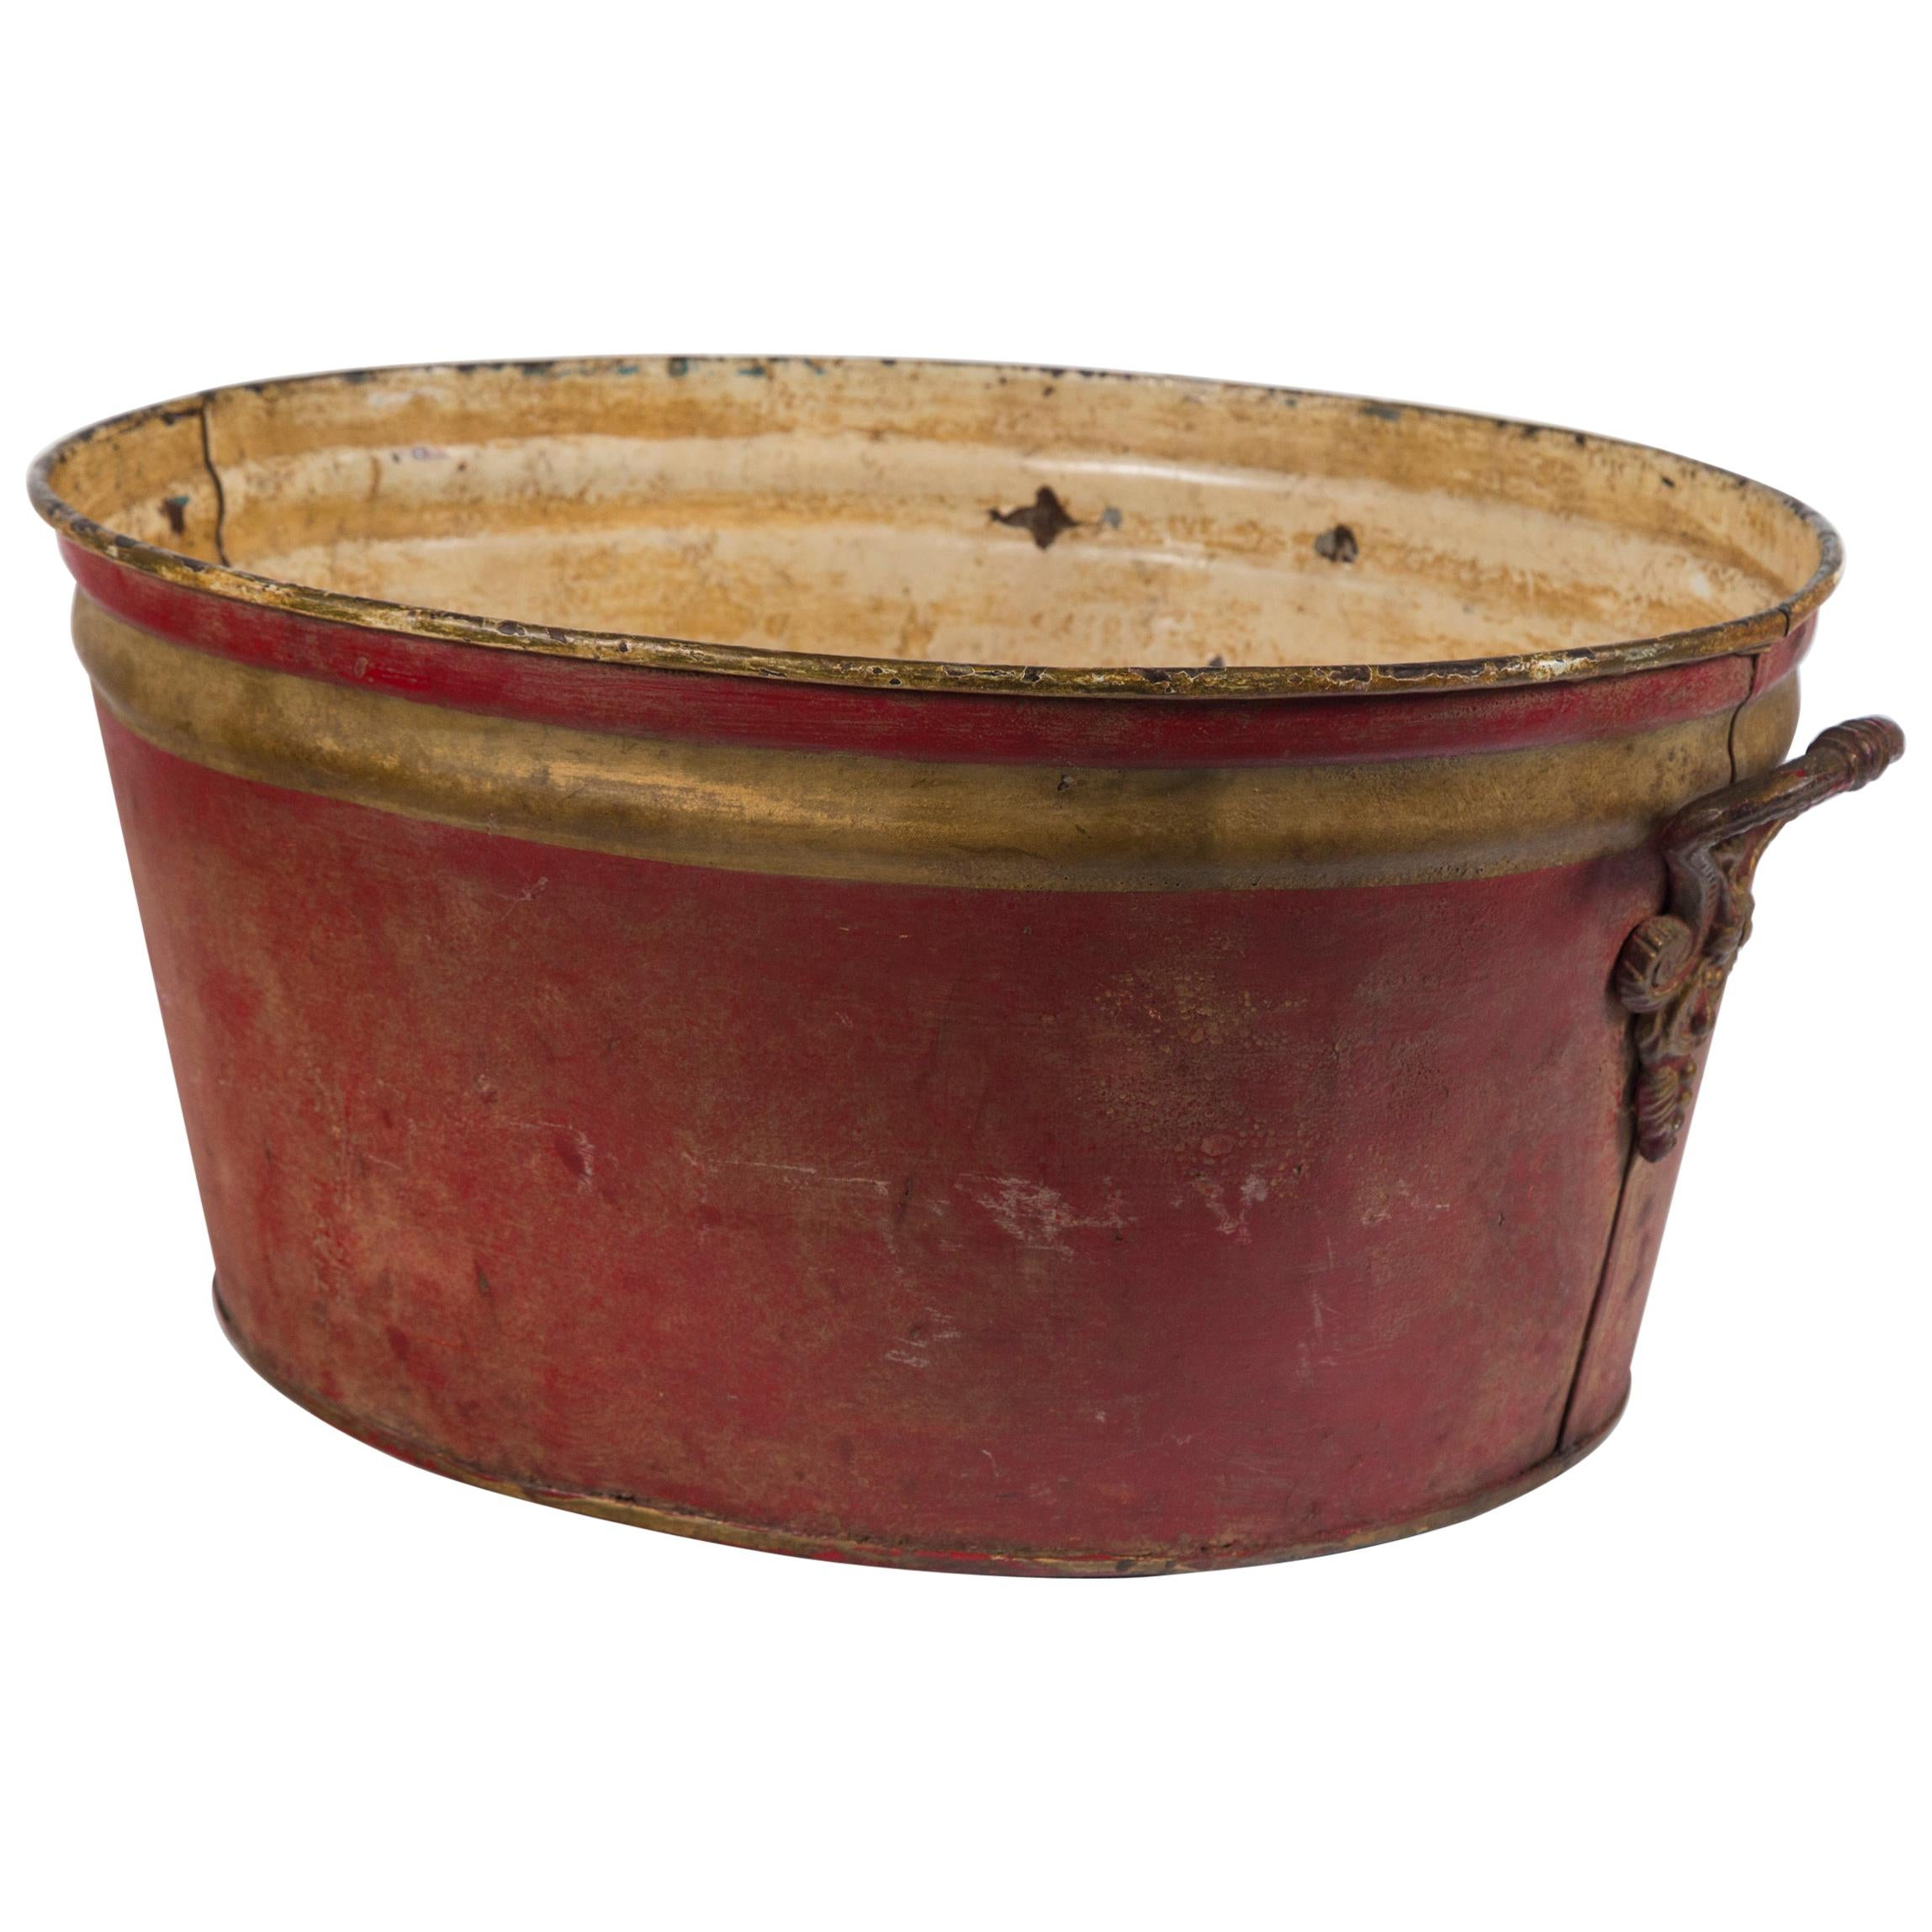 French Enamelware Basin, Early 20th Century